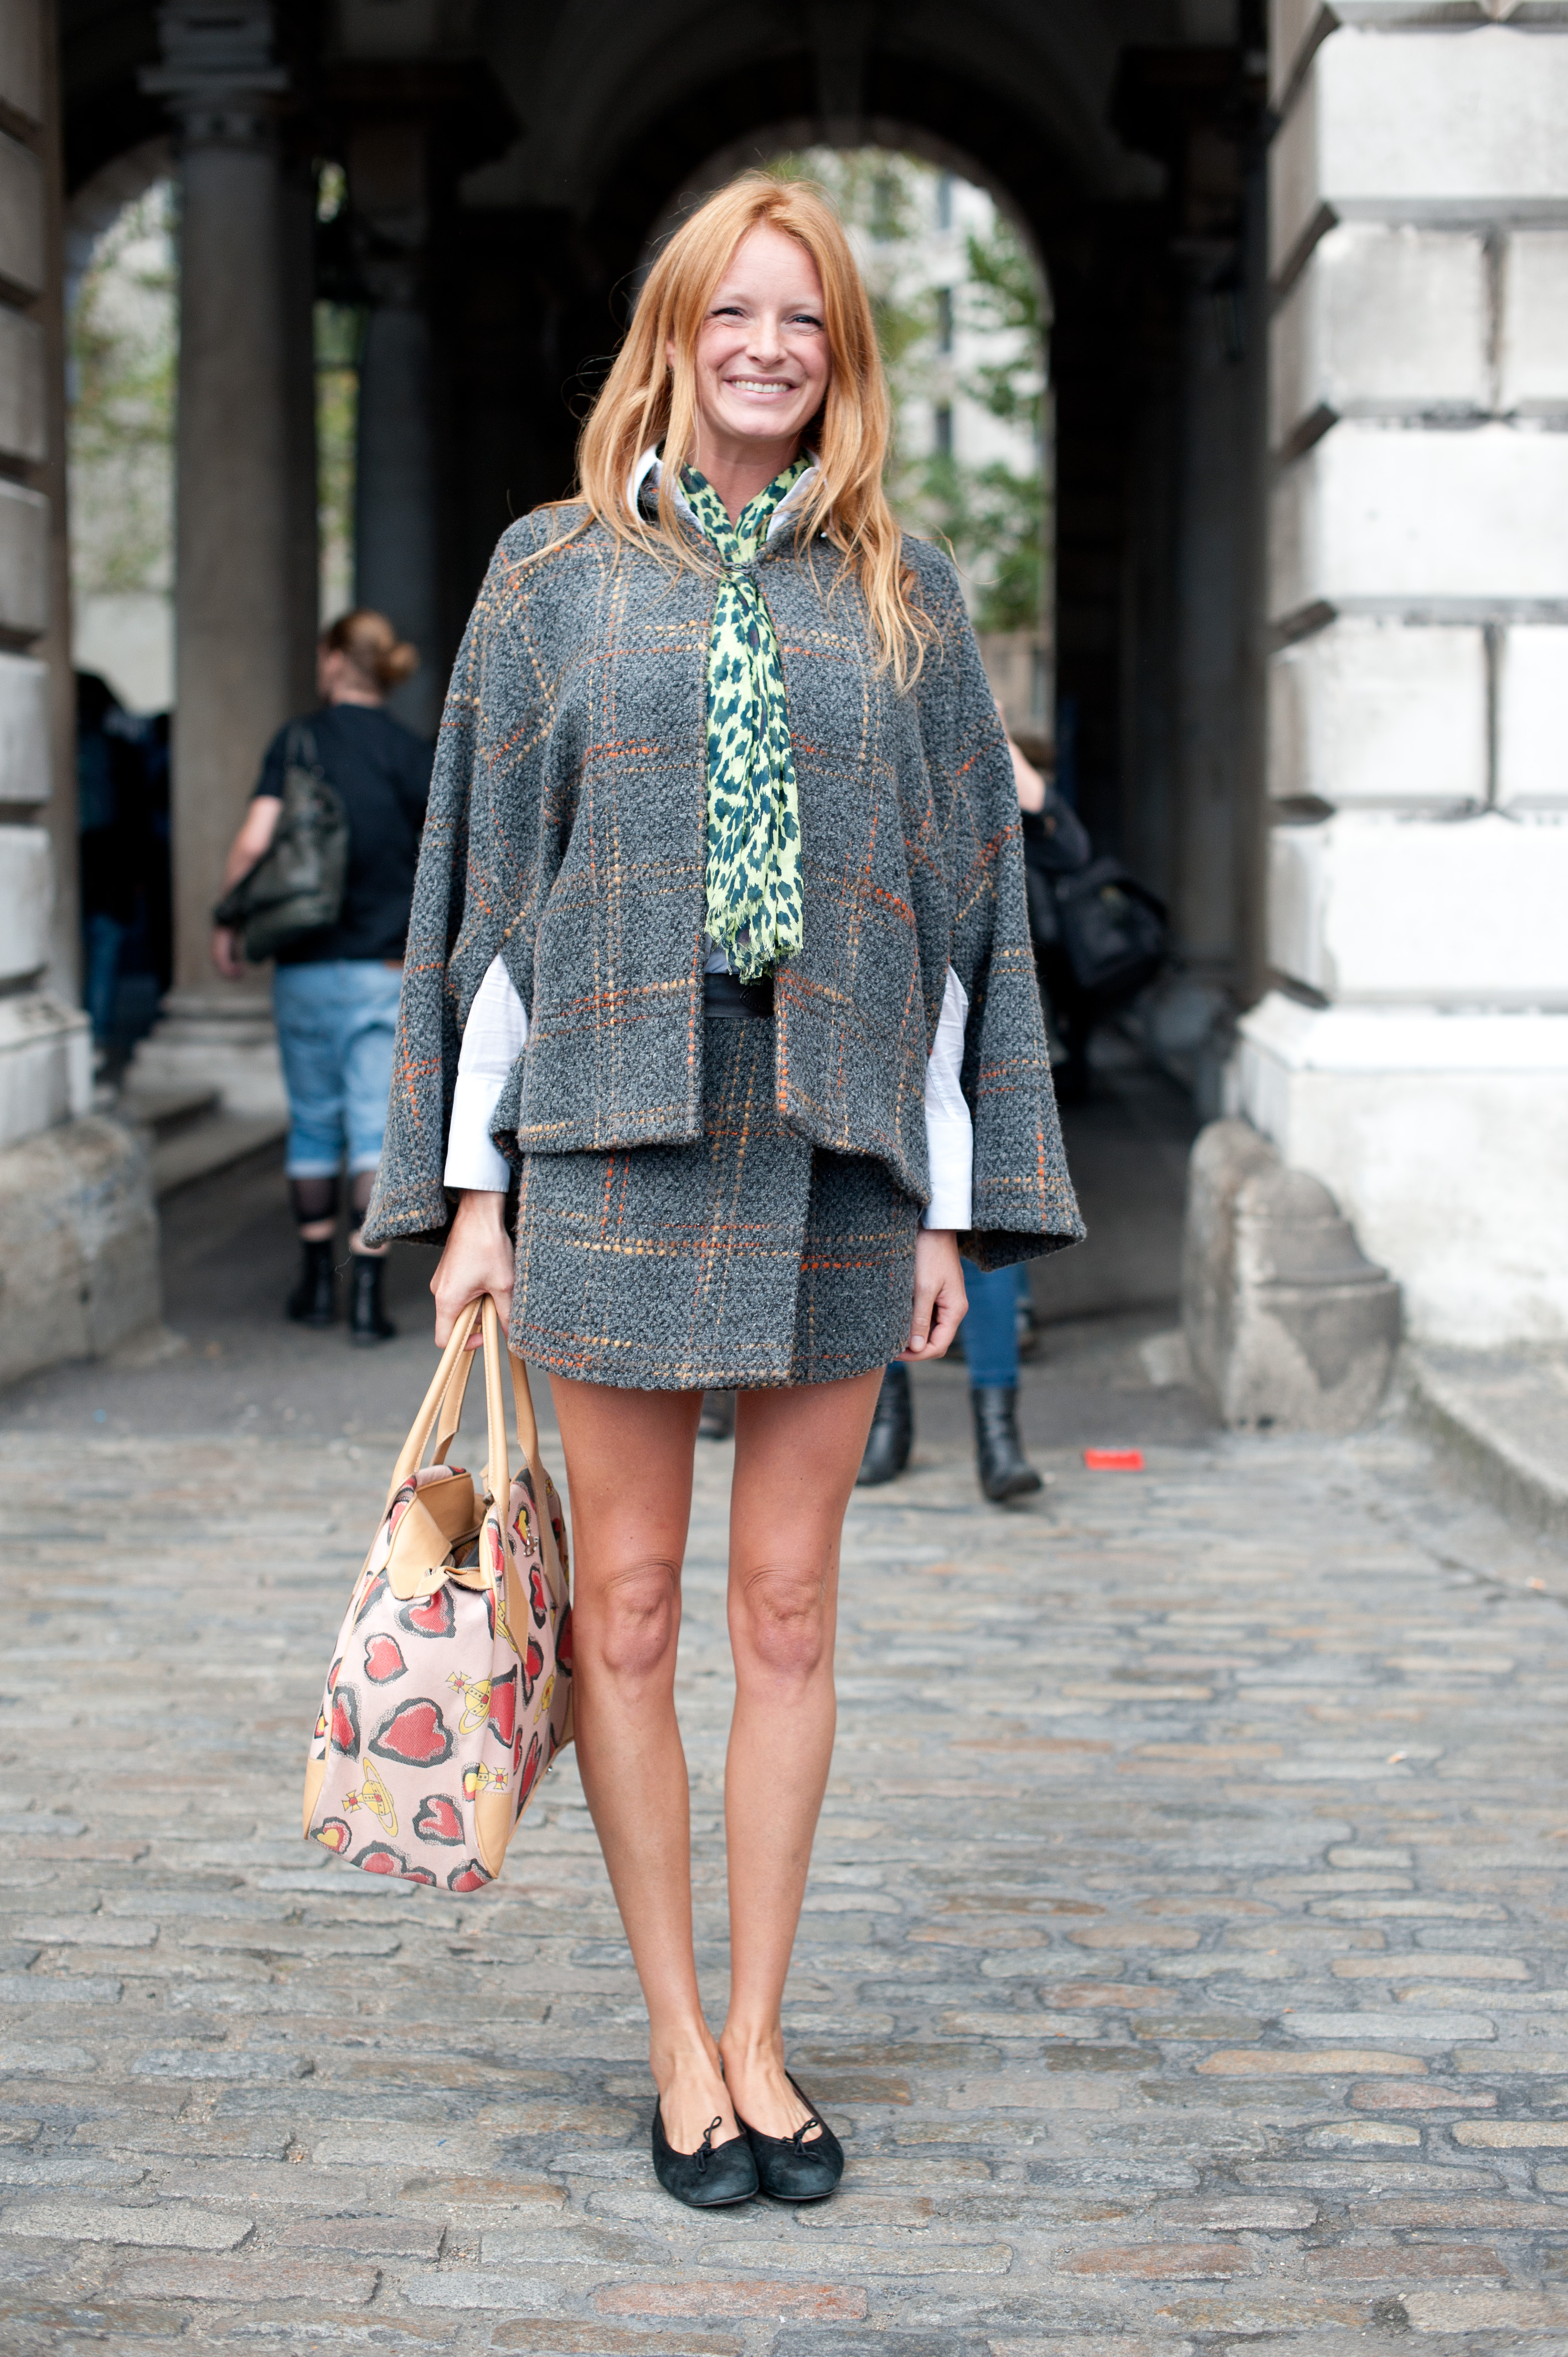 Tweedy plaid separates made an appearance, along with a pair of sweet ballet flats. Despite what you may think about dressier tweed looks, the poncho-inspired top provided a less-formal feel.